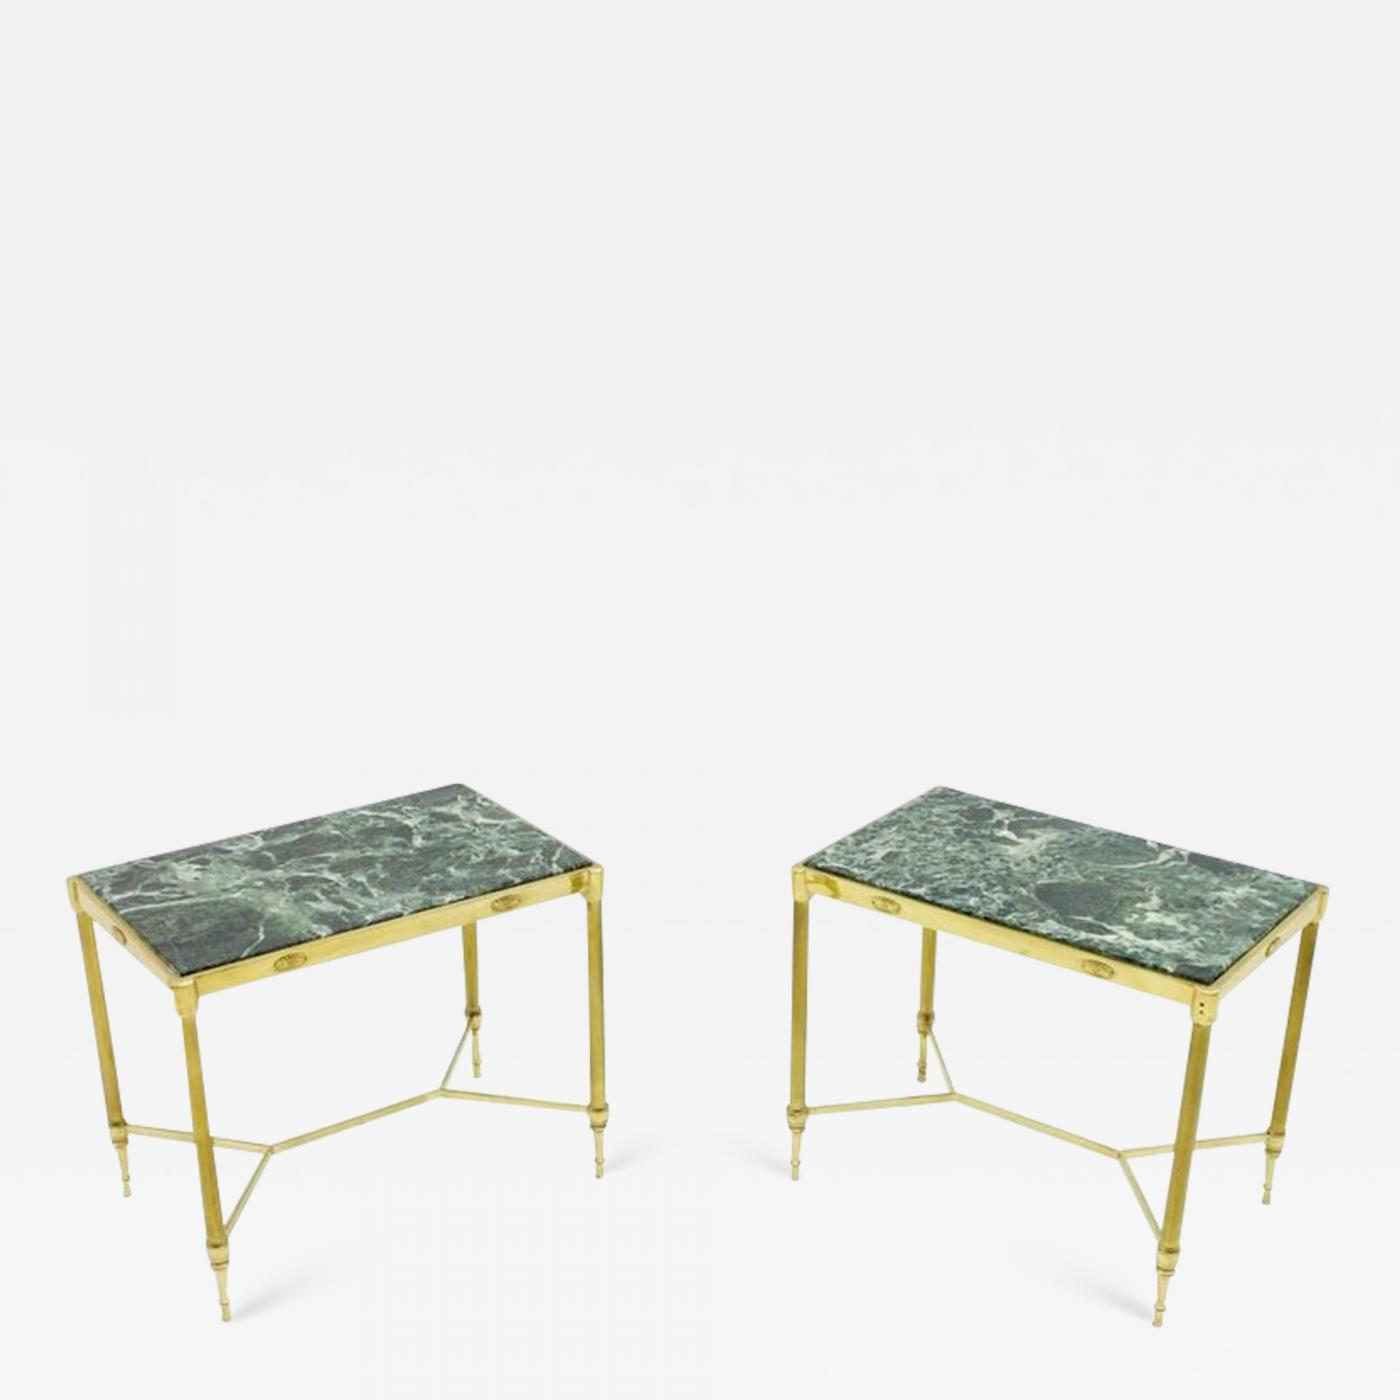 Marble Top Brass Coffee Table.Pair Of Italian Brass Side Tables With Green Marble Top 1950s